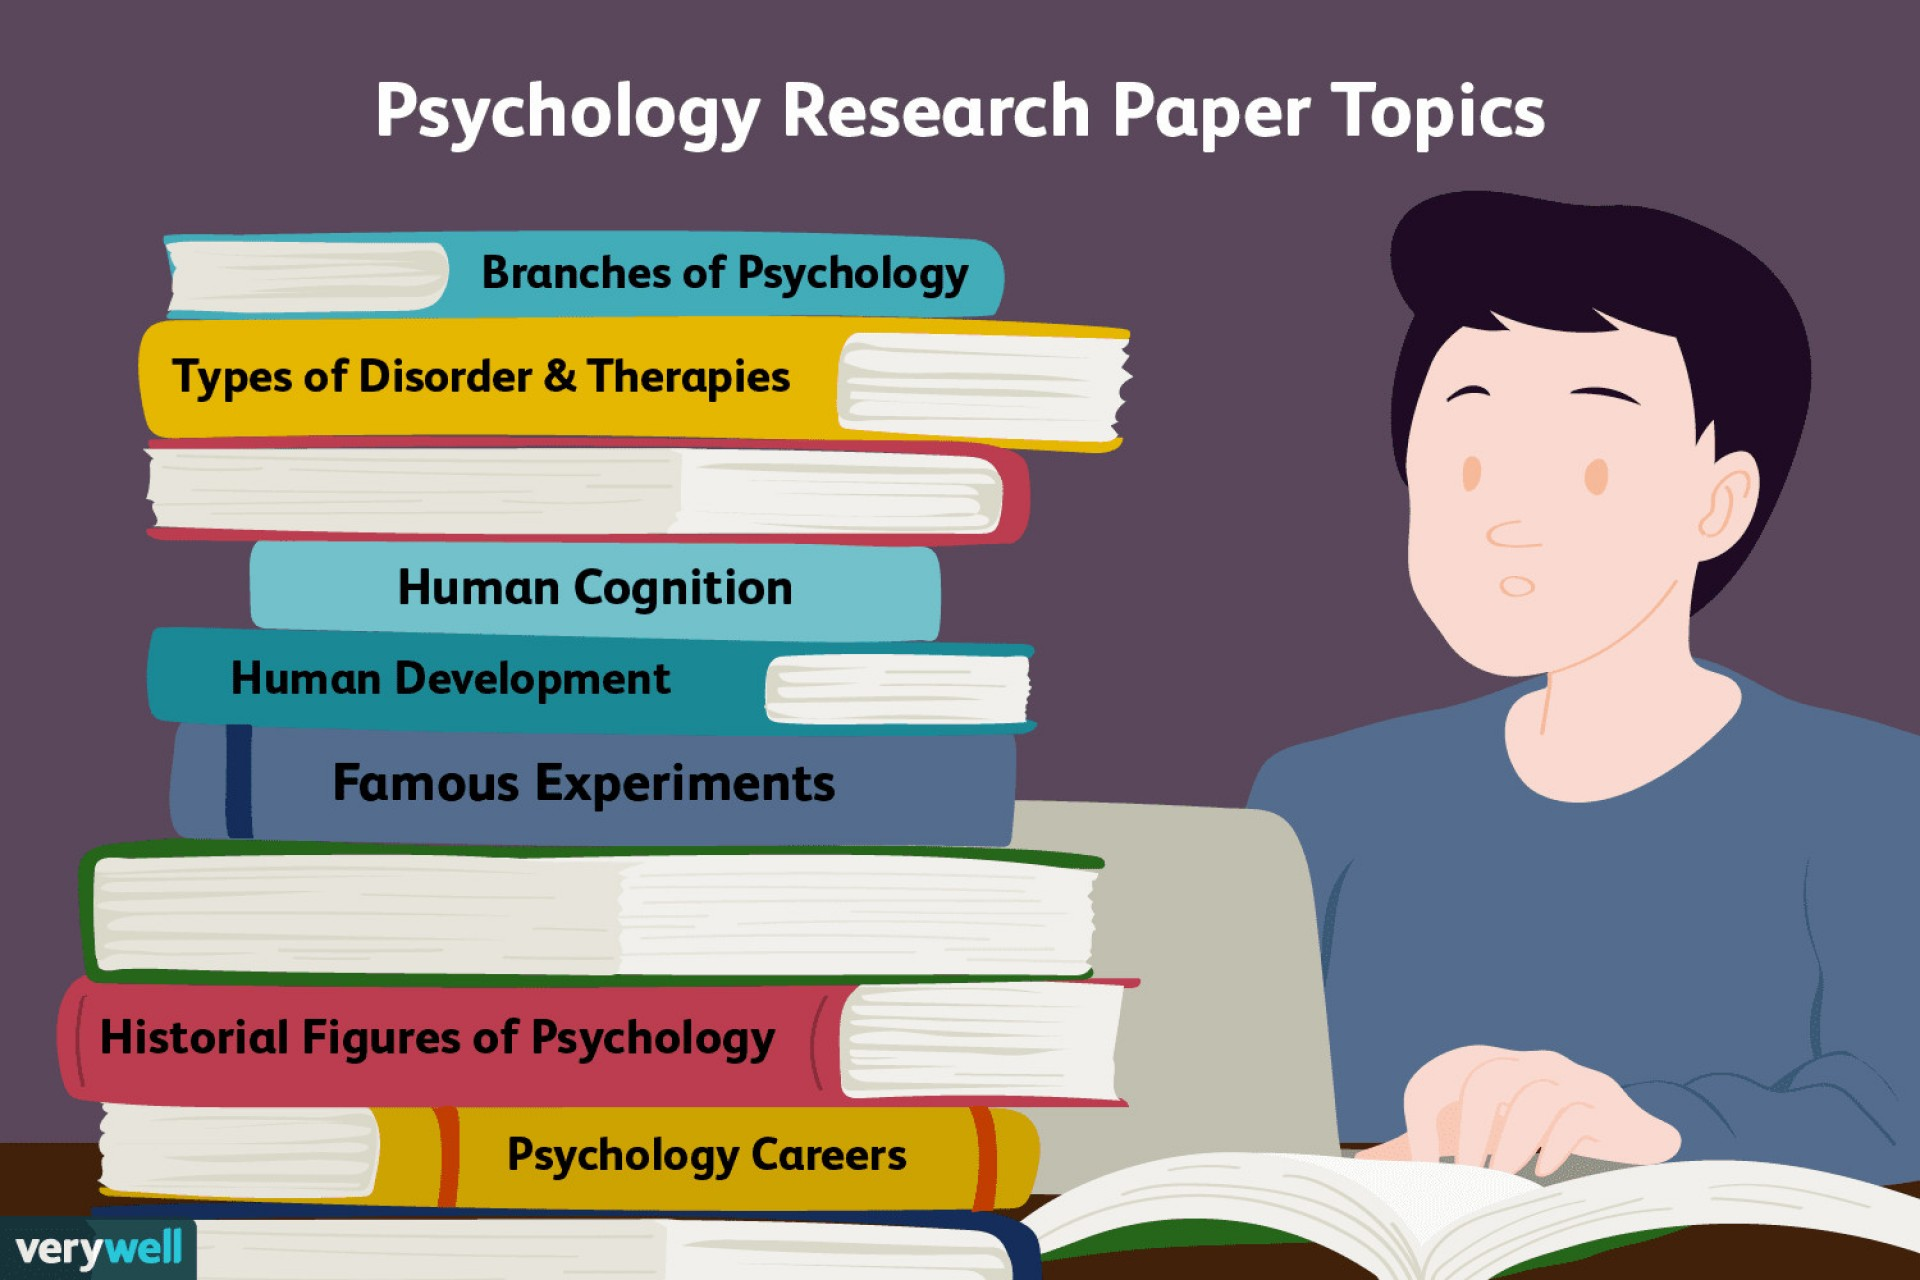 011 Biology Research Paper Ideas Example New Psychology Topics Great Beautiful Marine Topic 1920